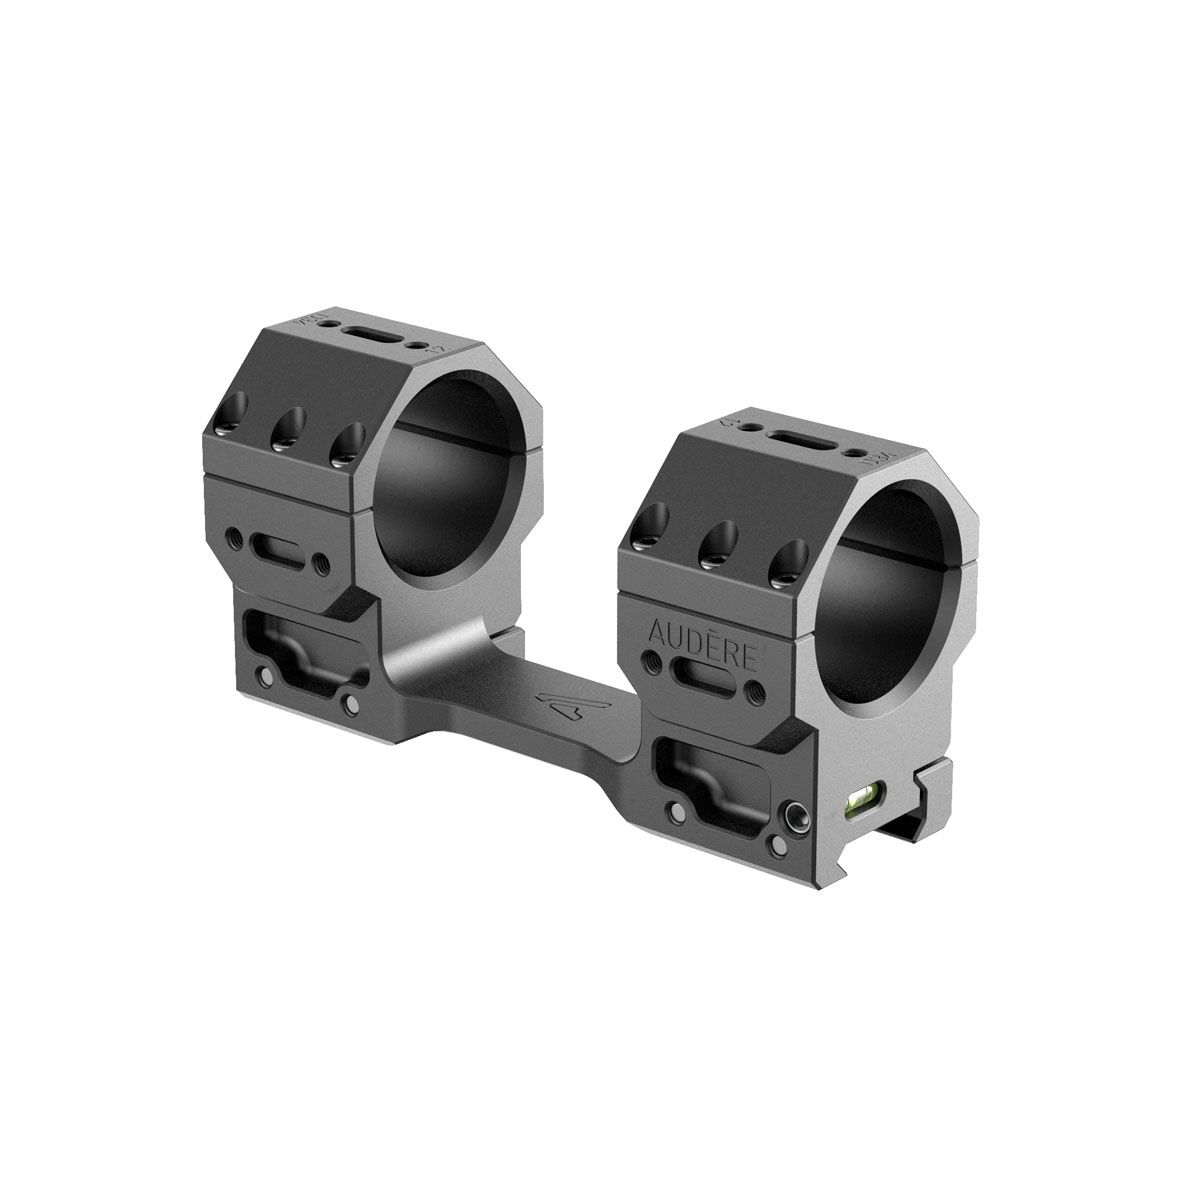 "Audere - Adversus Scope Mount - 34 mm - High (38mm/1.5"") - 20MOA"